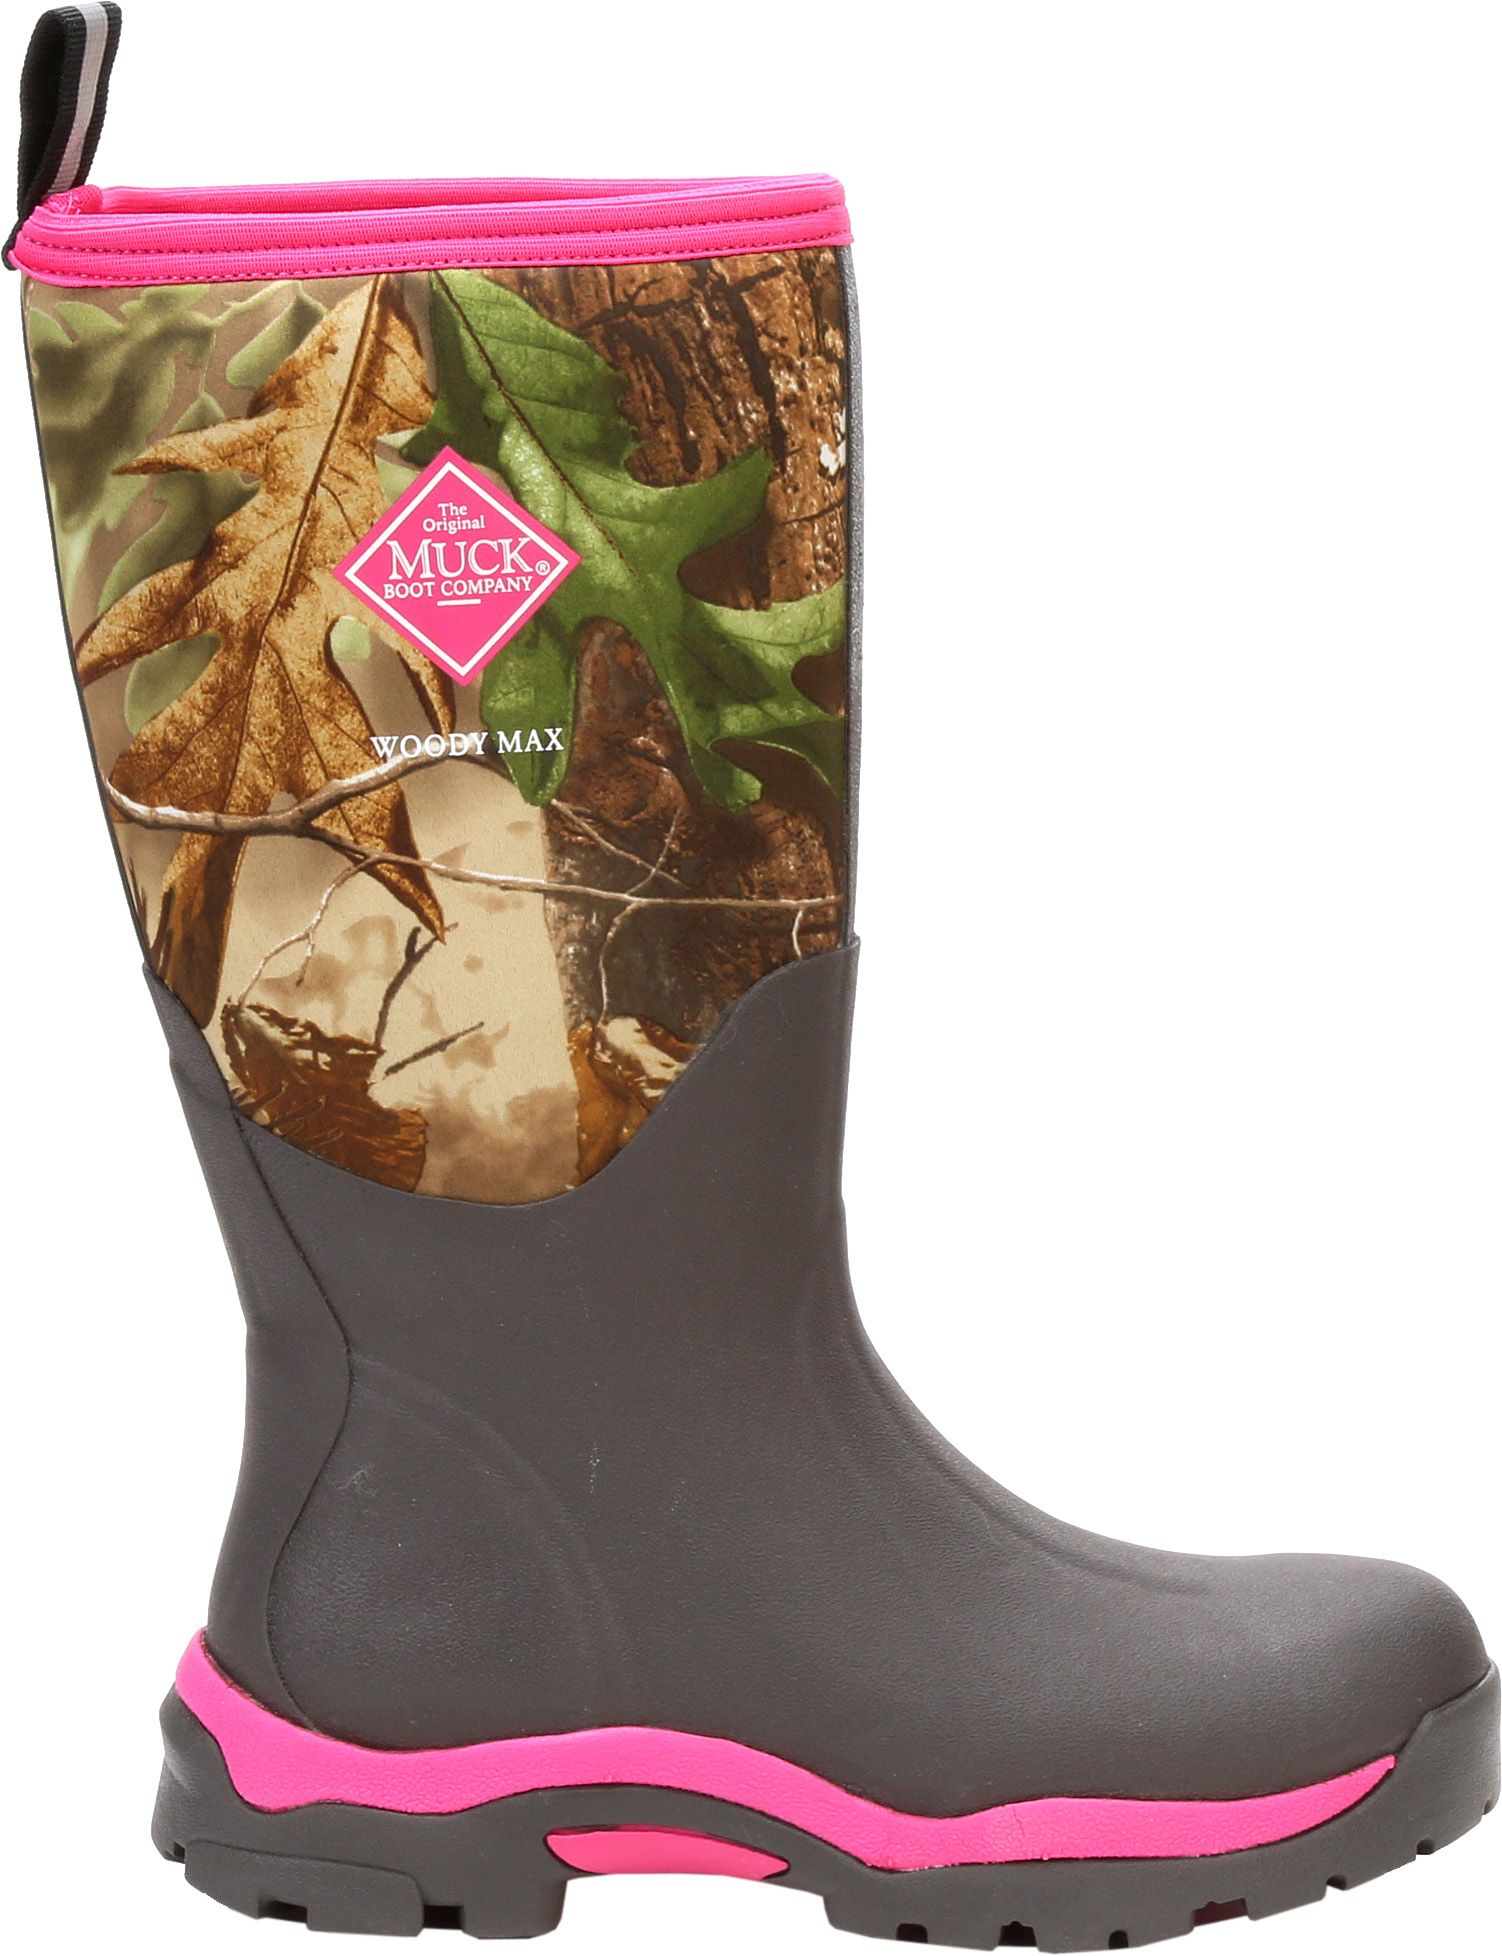 Muck Boots Women's Woody PK Rubber Hunting Boots, Size: 8.0, Brown thumbnail